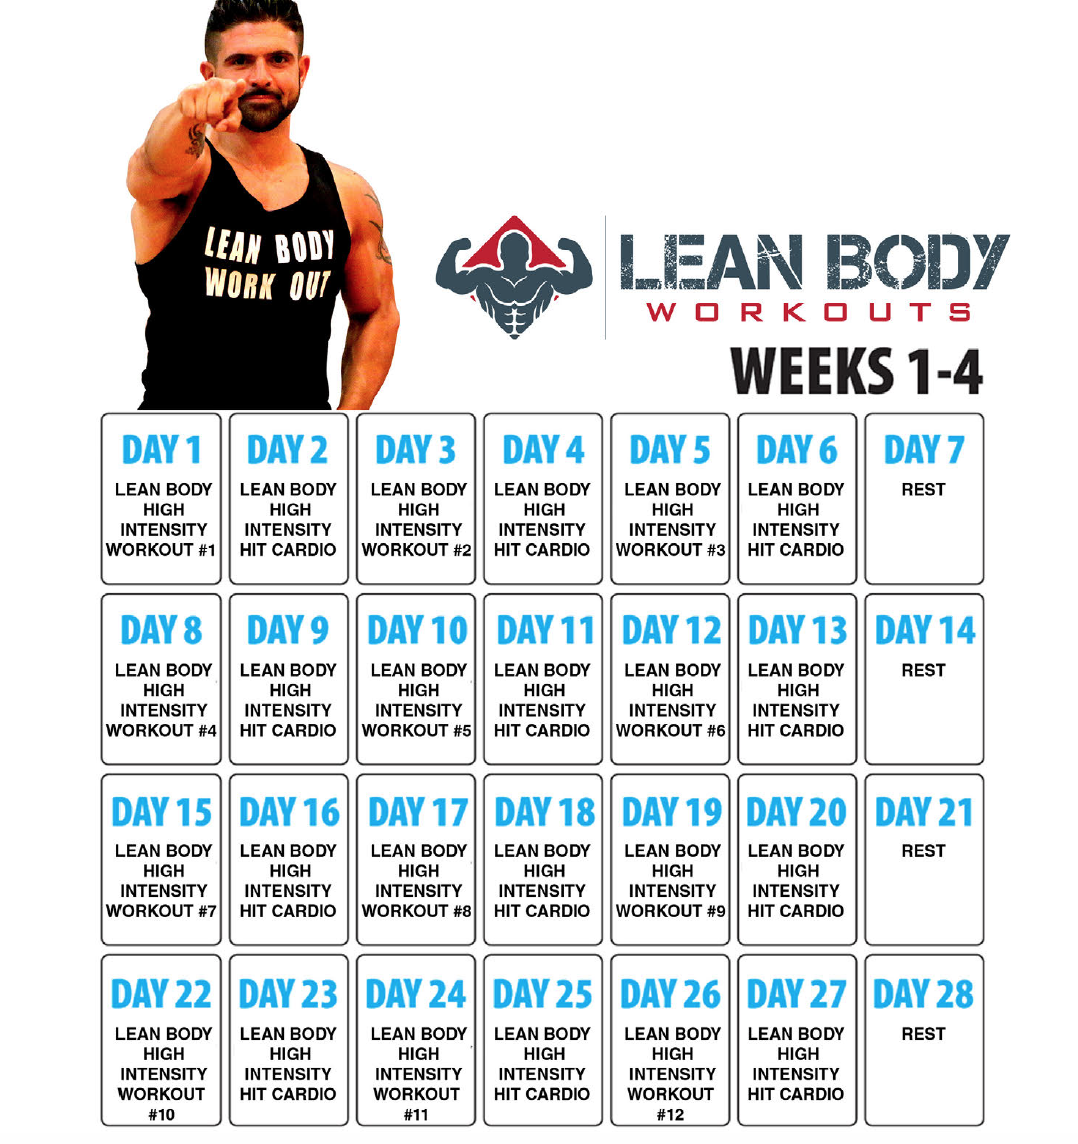 Gym Workout Schedule For Lean Body | EOUA Blog